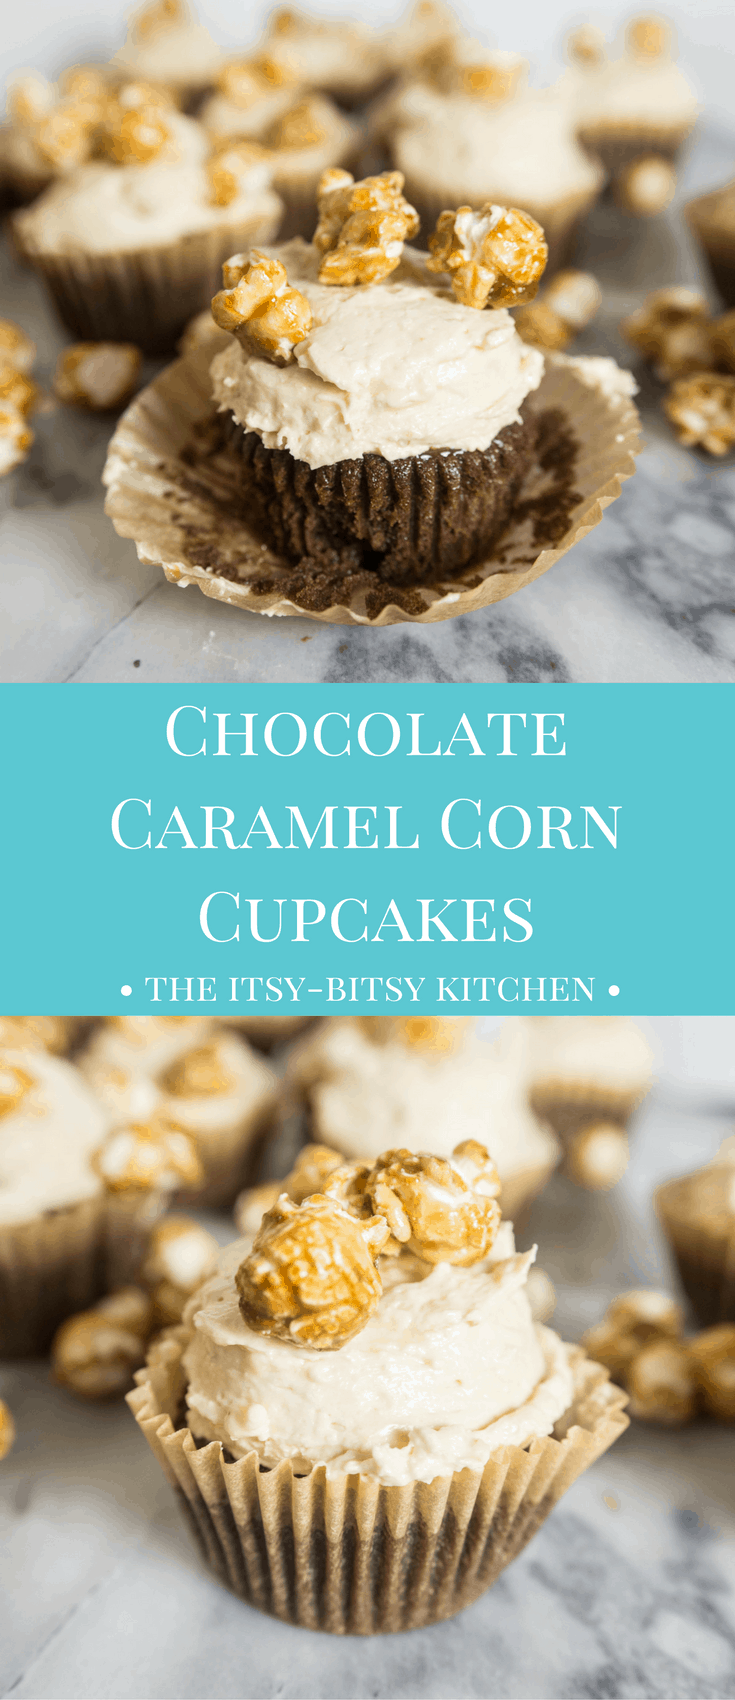 Chocolate Caramel Corn Cupcakes - The Itsy-Bitsy Kitchen